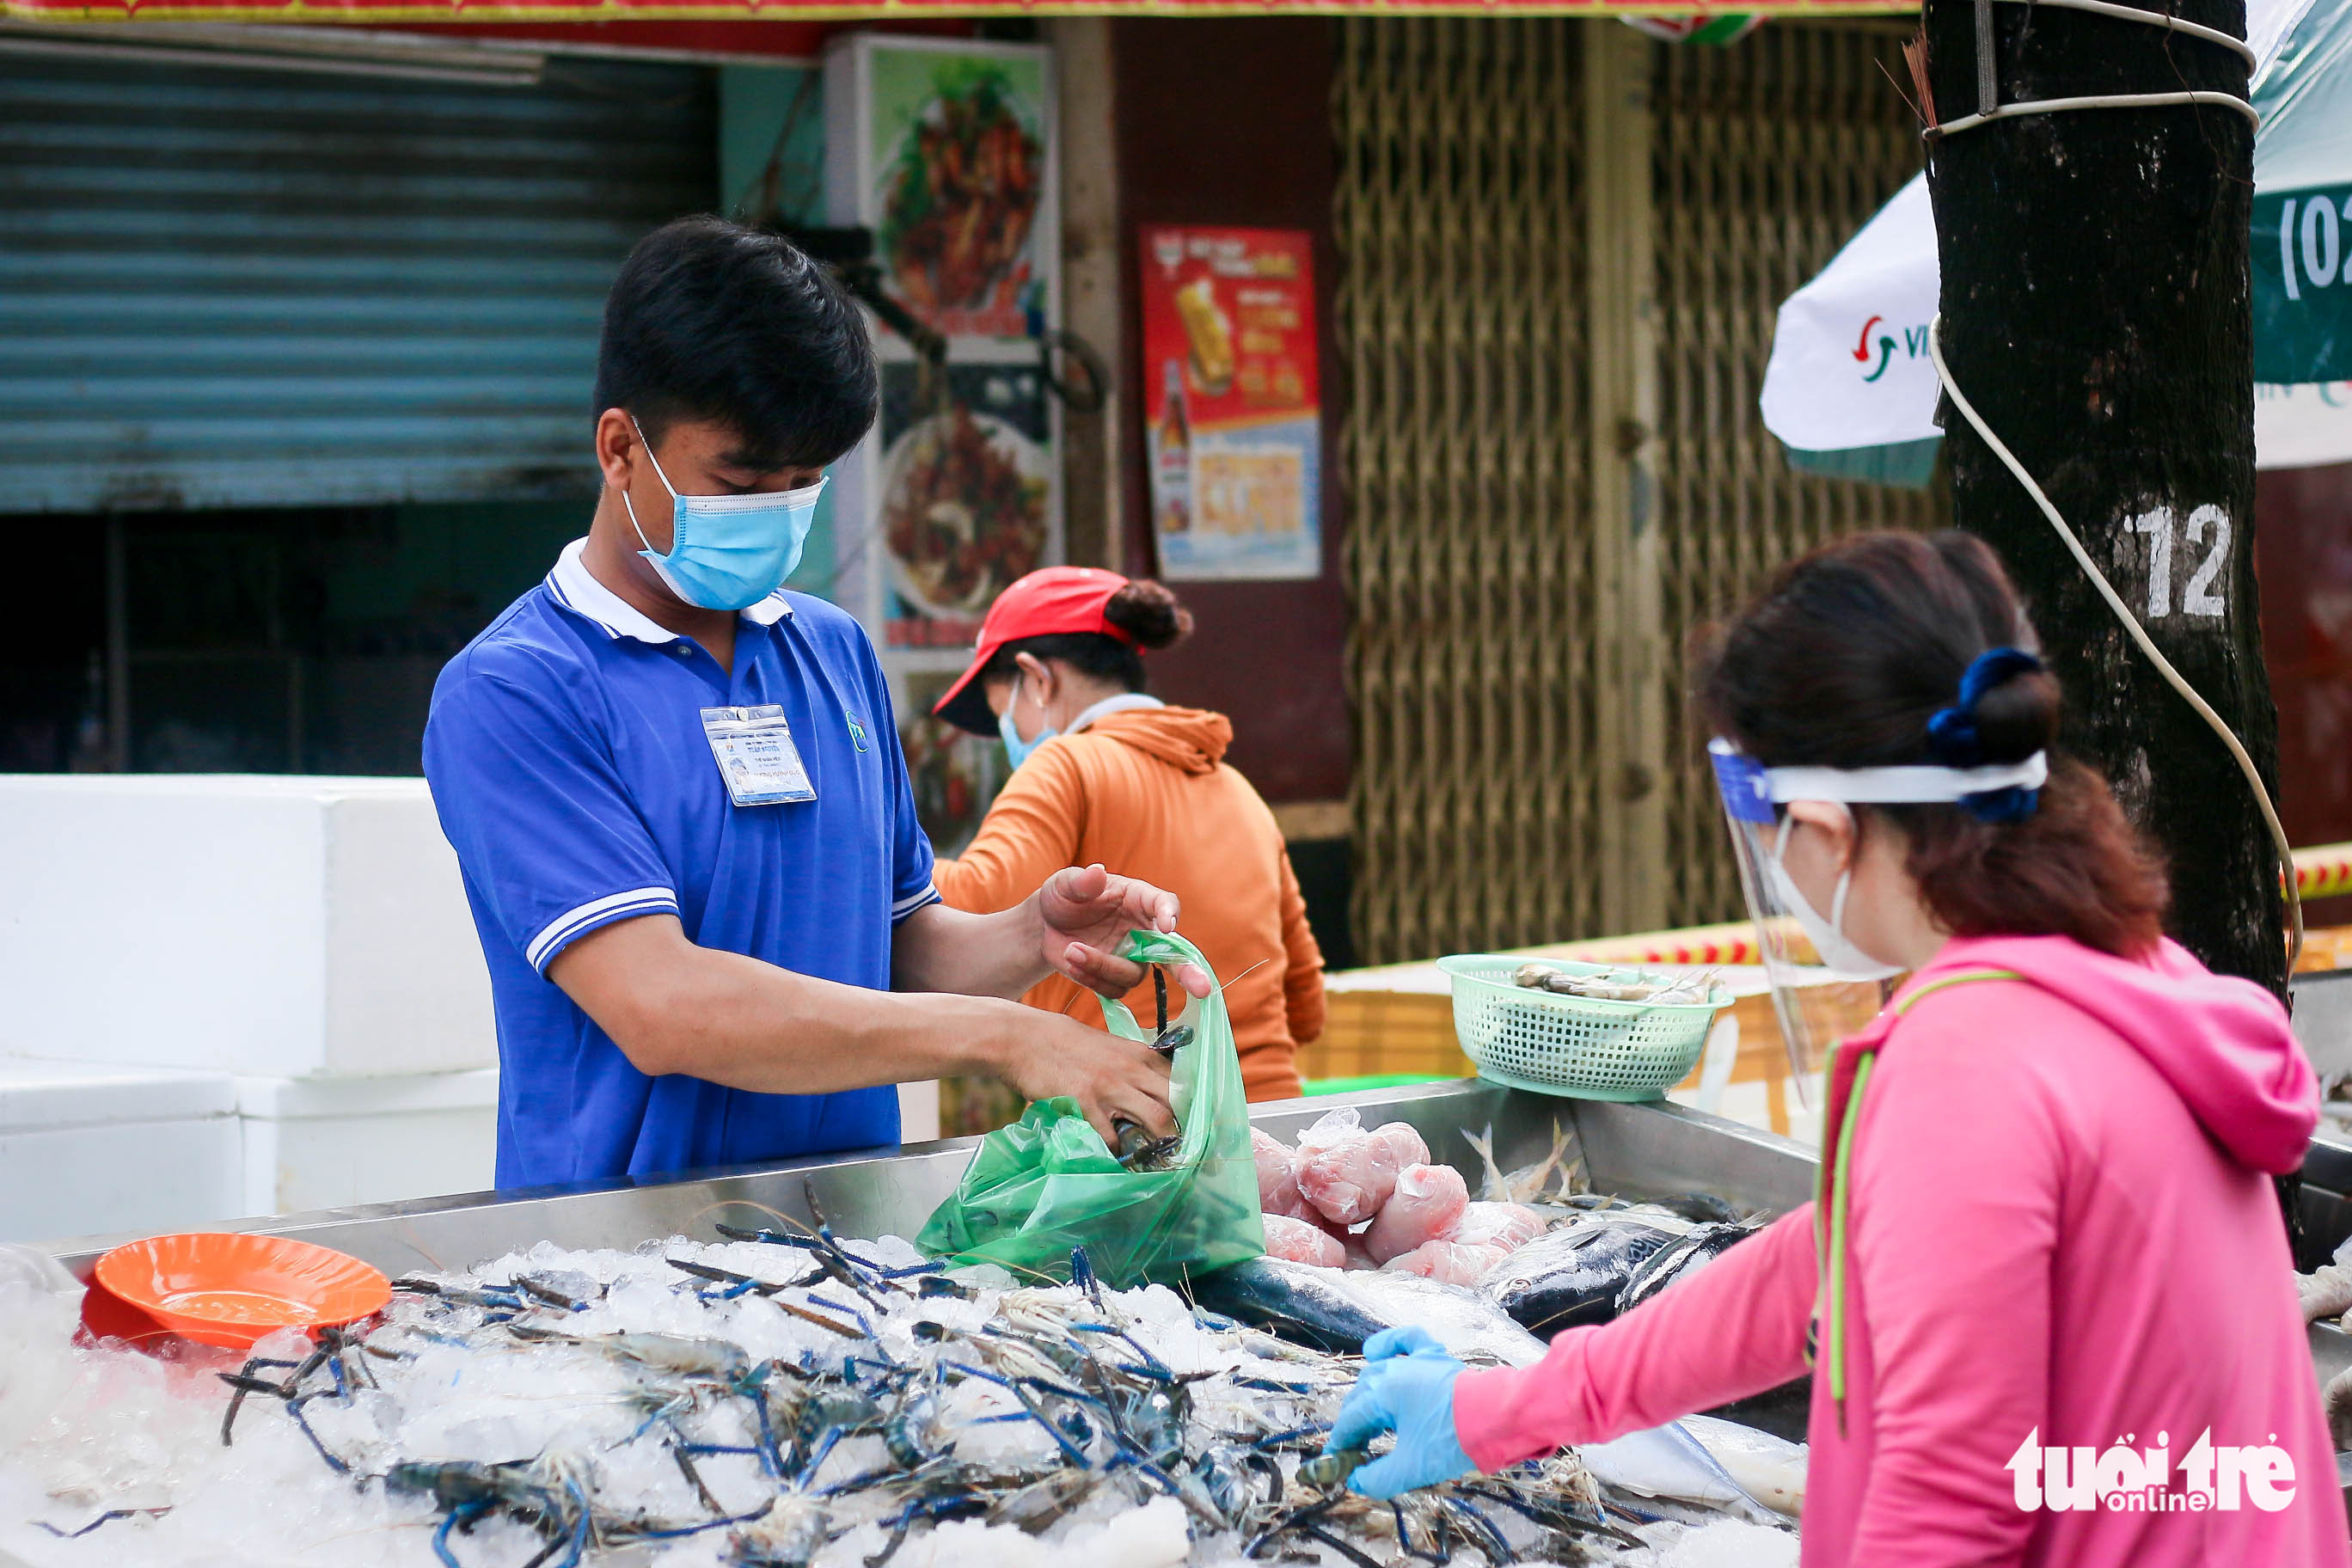 Seafood is sold at a makeshift market on Tan Da Street in District 5, Ho Chi Minh City, September 26, 2021. Photo: Chau Tuan / Tuoi Tre